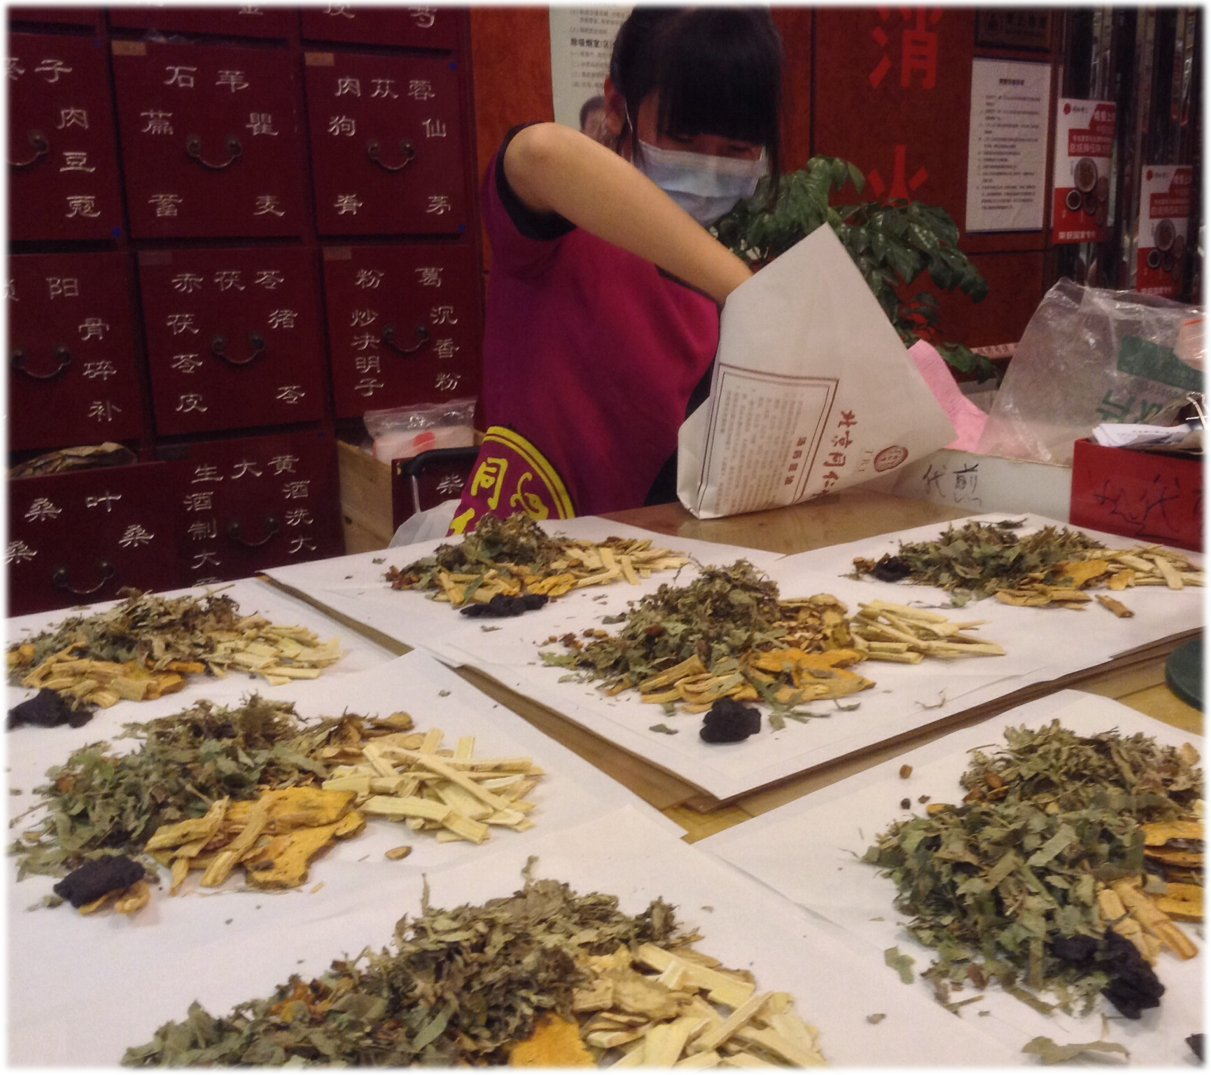 Chinese herbal treatment - The Origins Of Chinese Herbal Medicine Date Back Several Millennia Making It One Of The Oldest And Still Surviving Systems Of Health Care Treatment In The